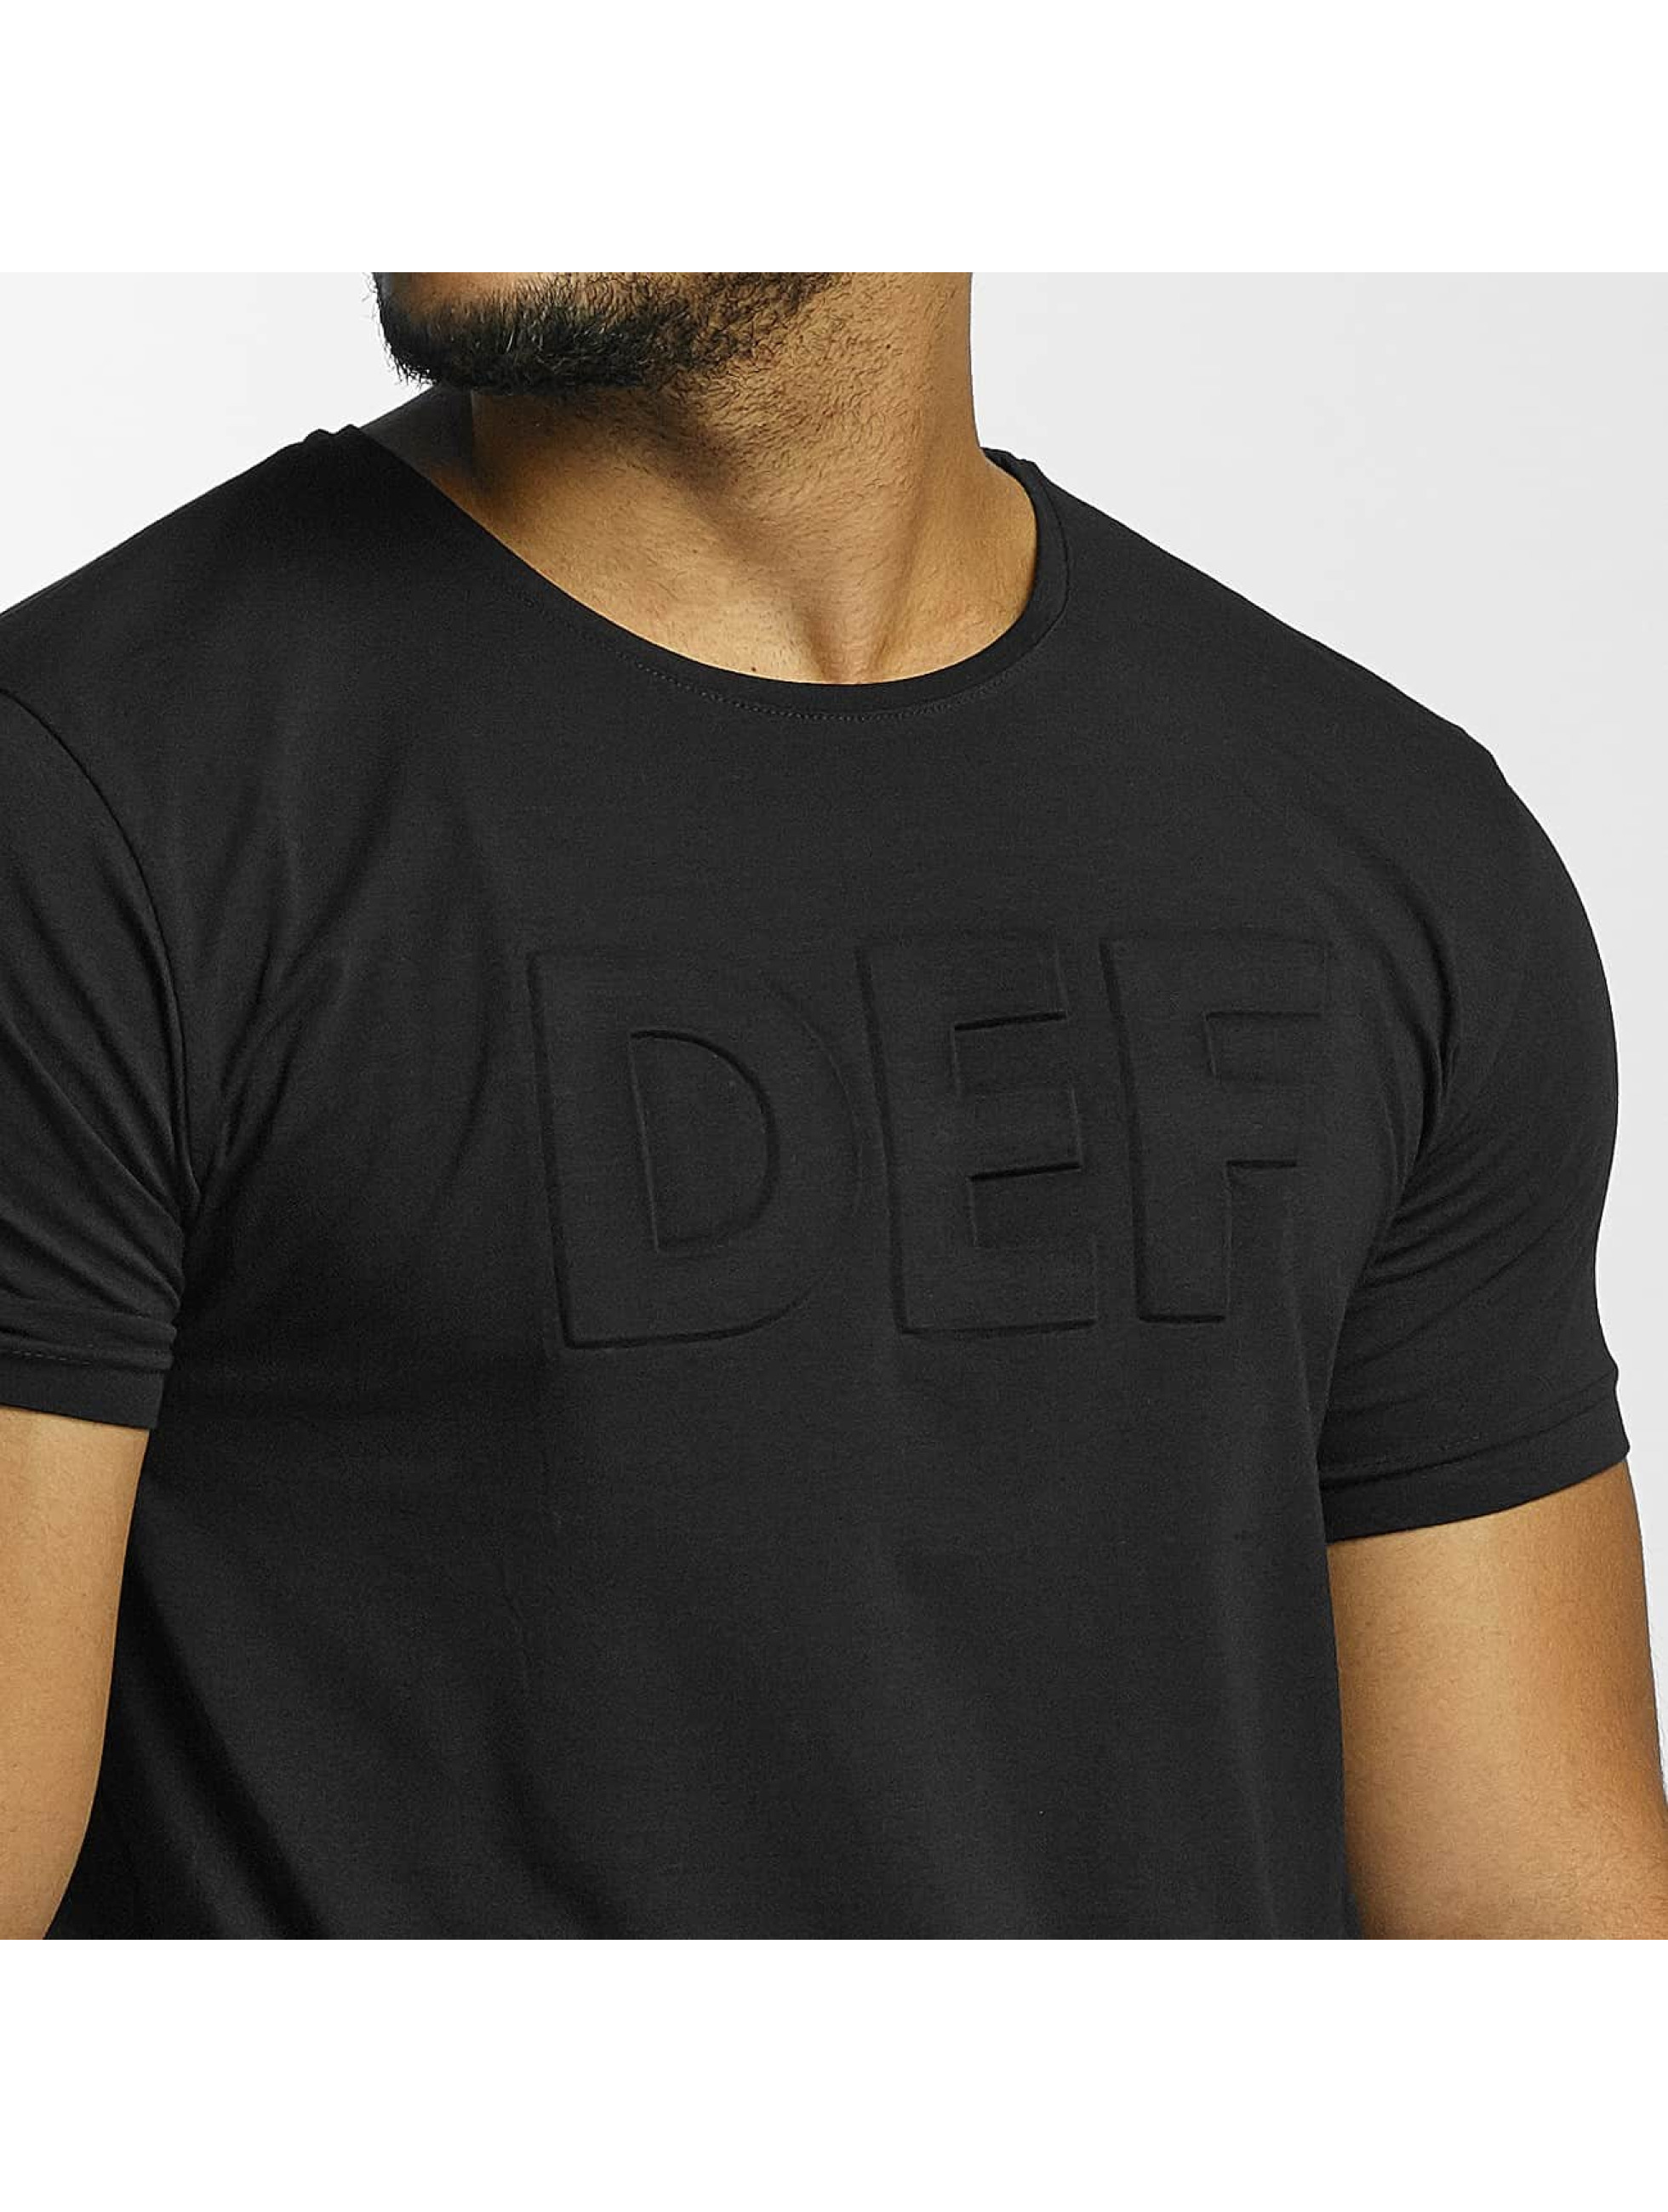 DEF T-Shirt Come Out black